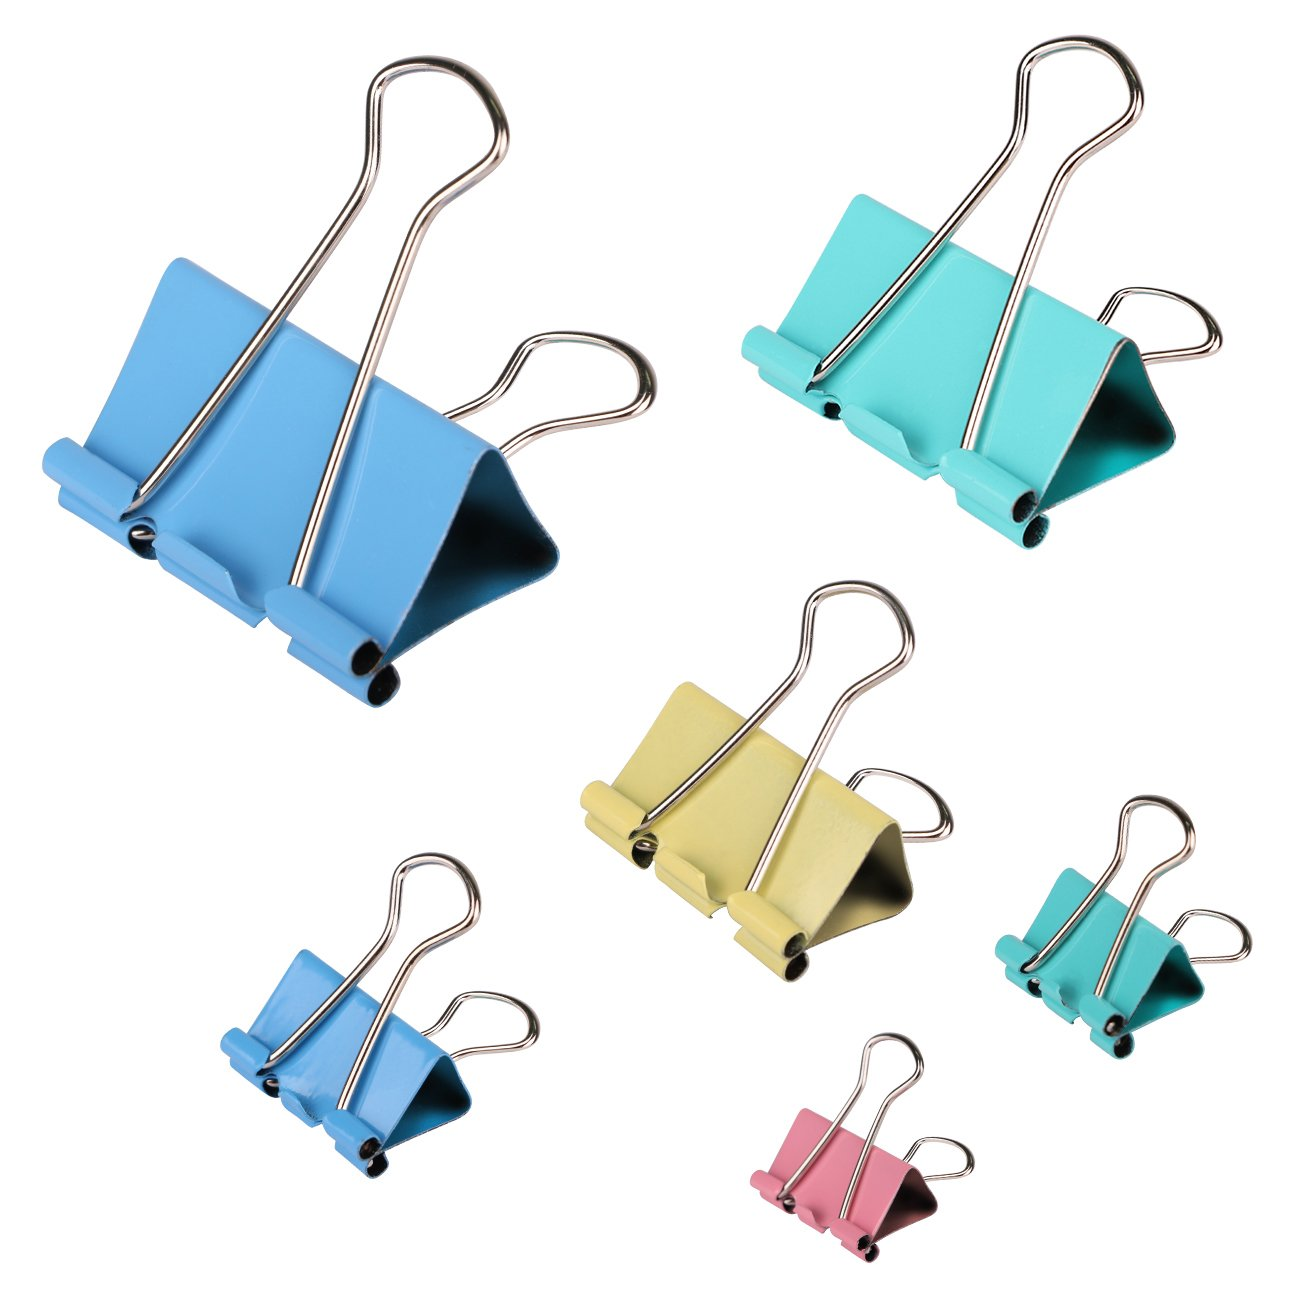 AshopZ 120 Piece Multi-Colored Assorted Metal Binder Clips for Document Organization